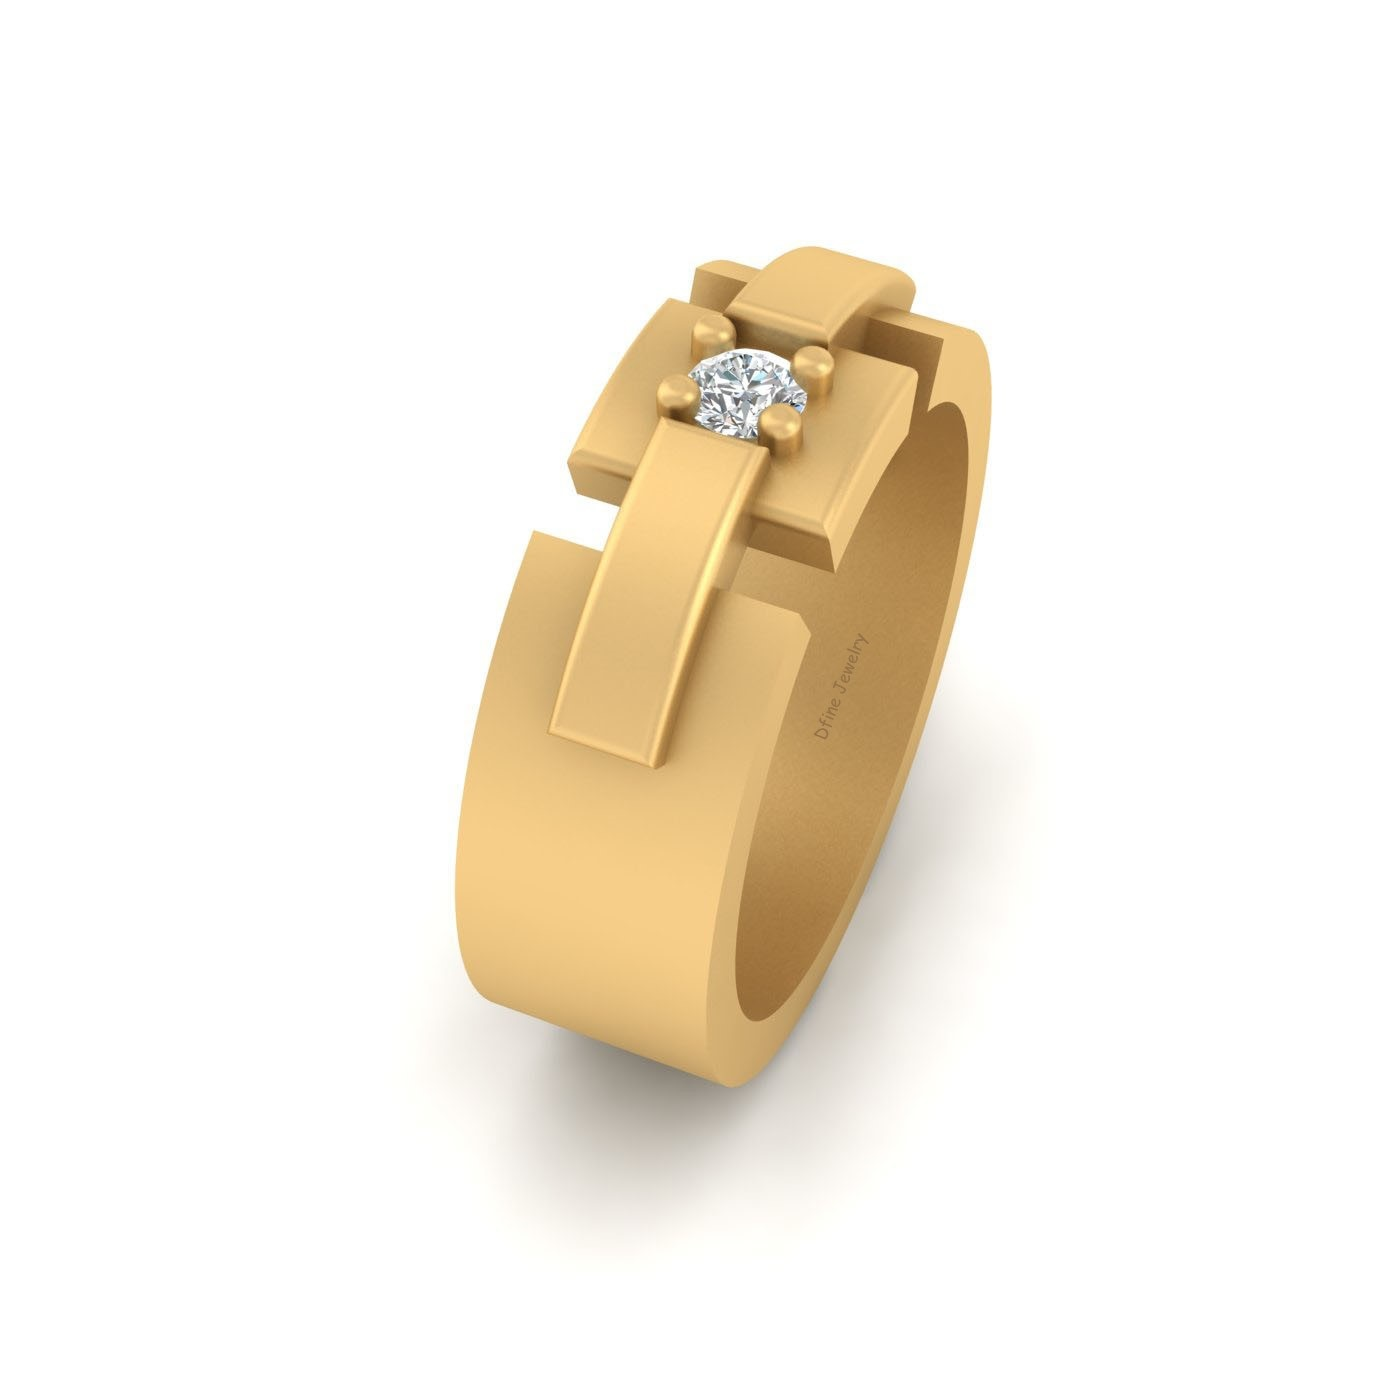 Diamond Groom Wedding Band Mens Jewelry Solid 14k Yellow Gold